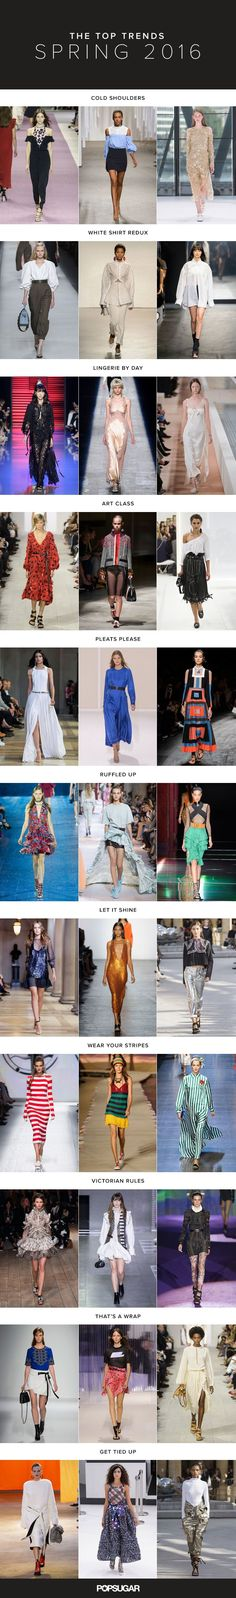 trends for Spring 2016 / tendencias en la primavera de 2016